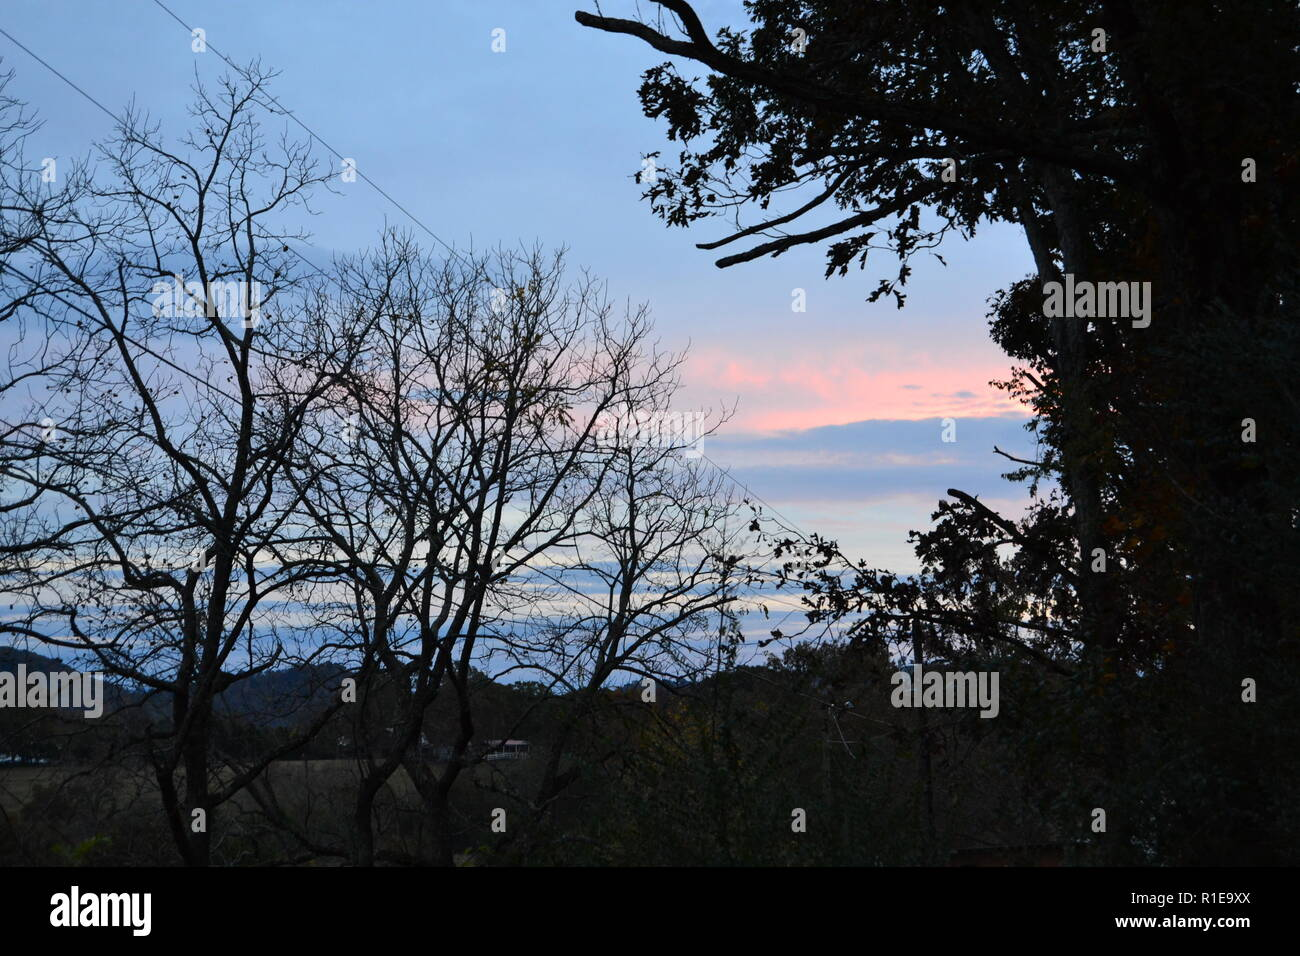 Herbst Sonnenuntergang am Horizont in Sweetwater, TN Stockfoto